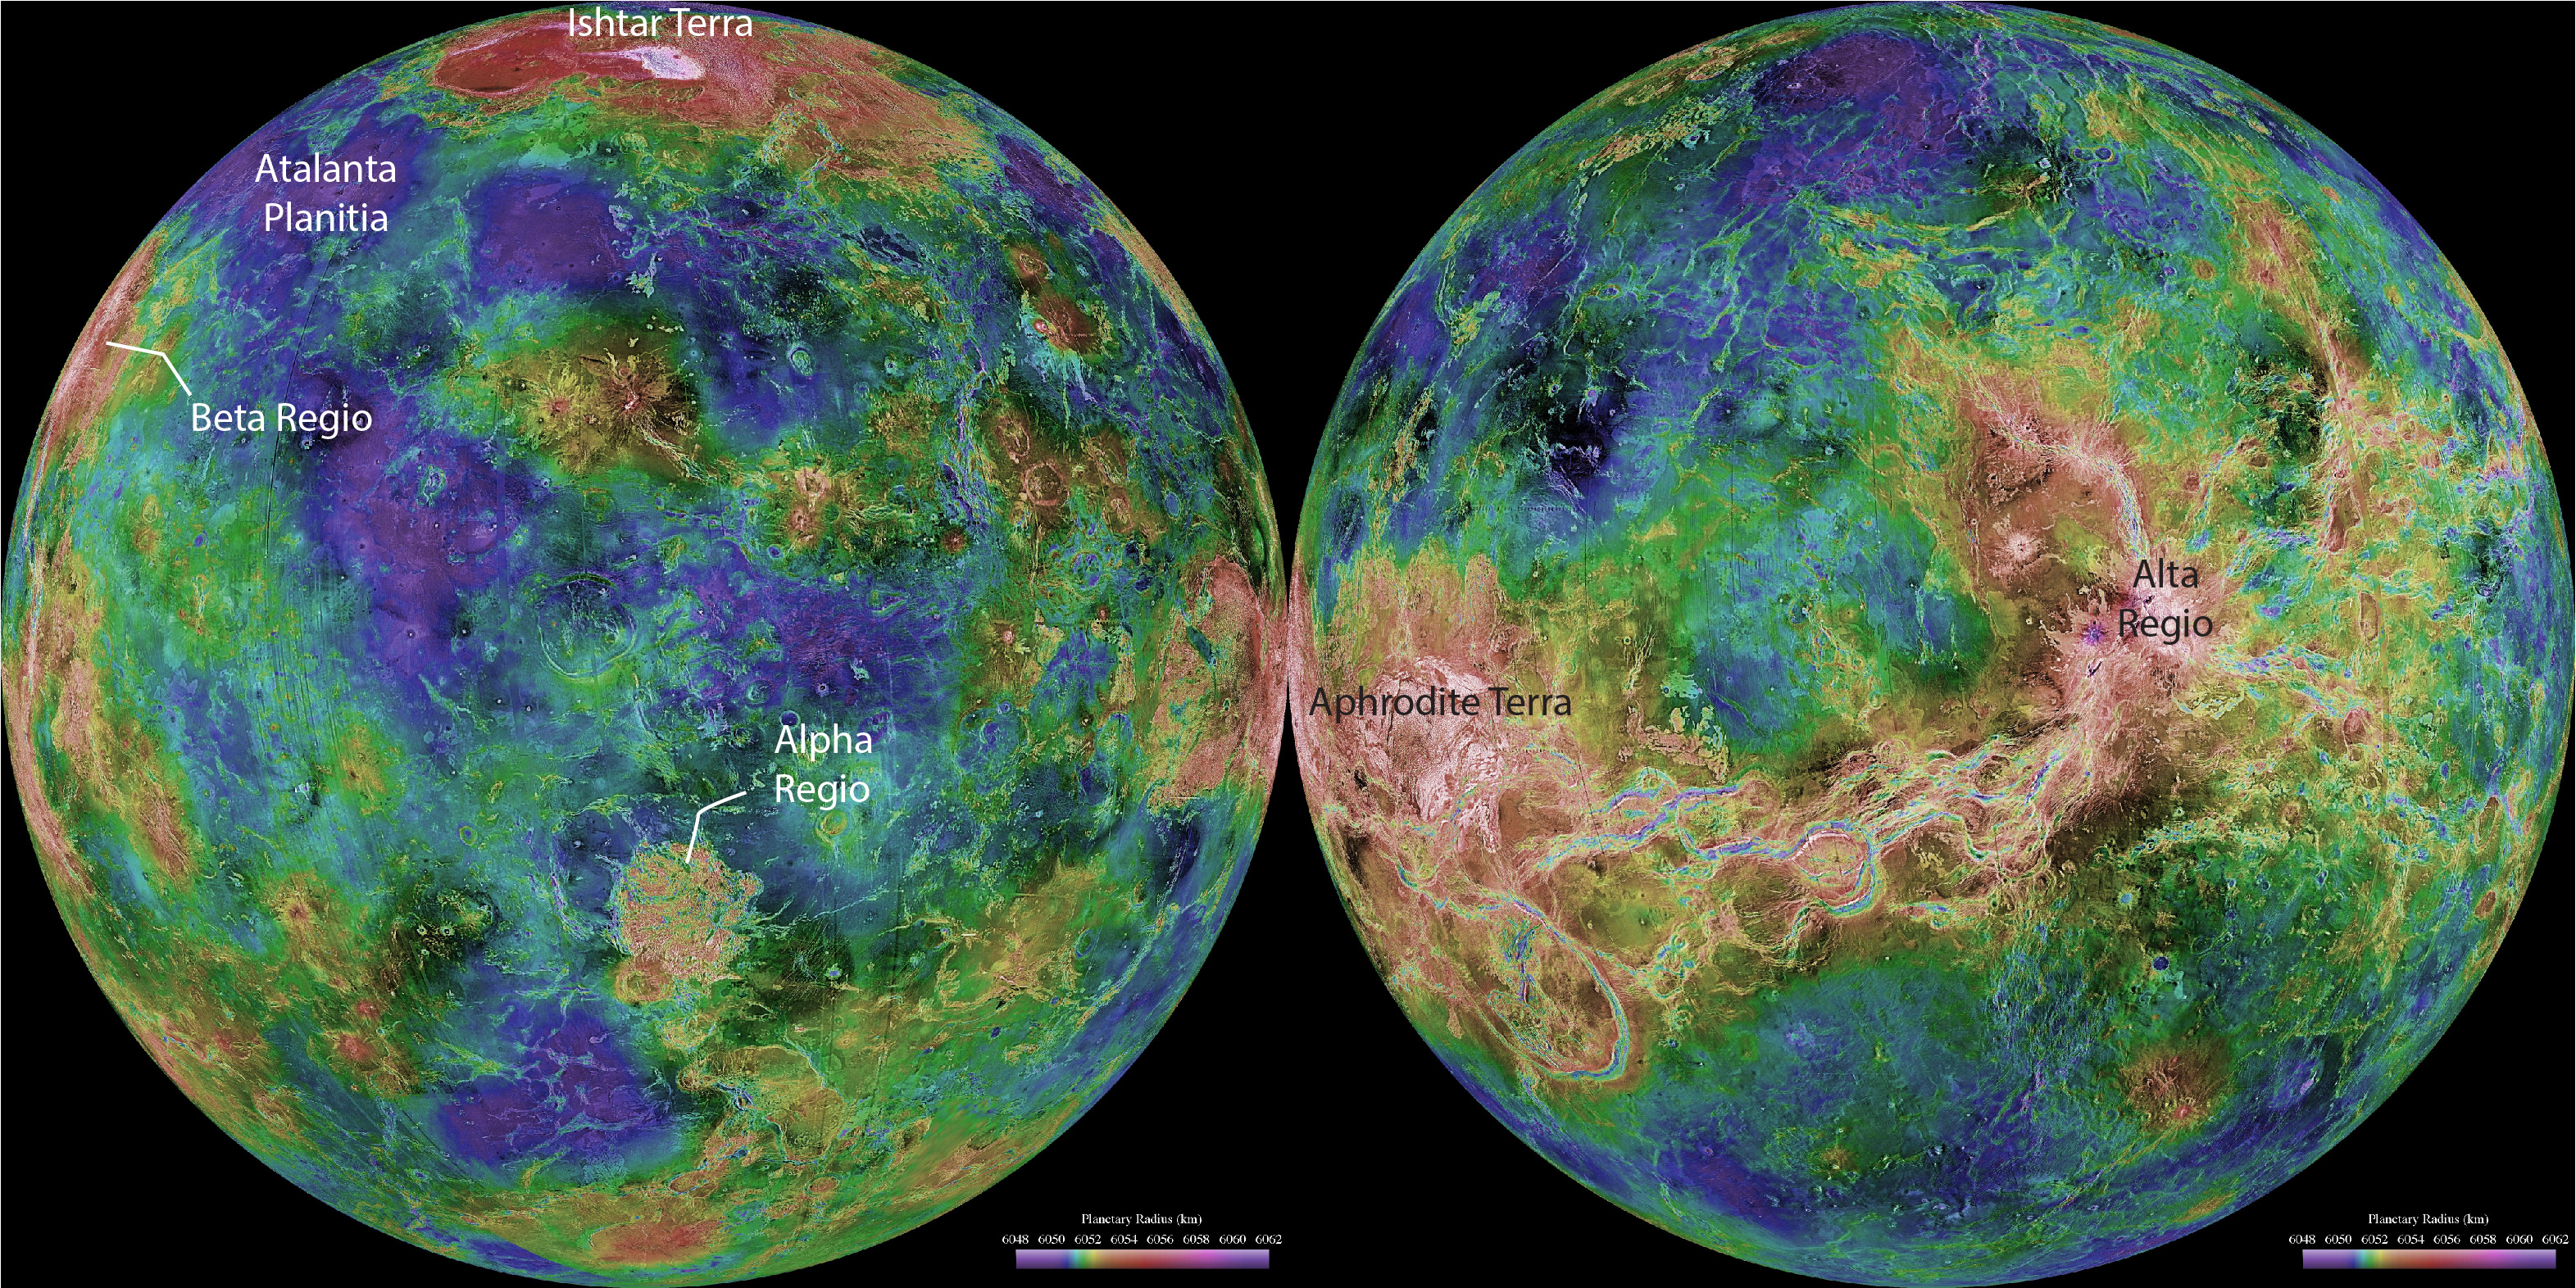 terraformed venus map, mars map, planet venus surface map, on venus with water map